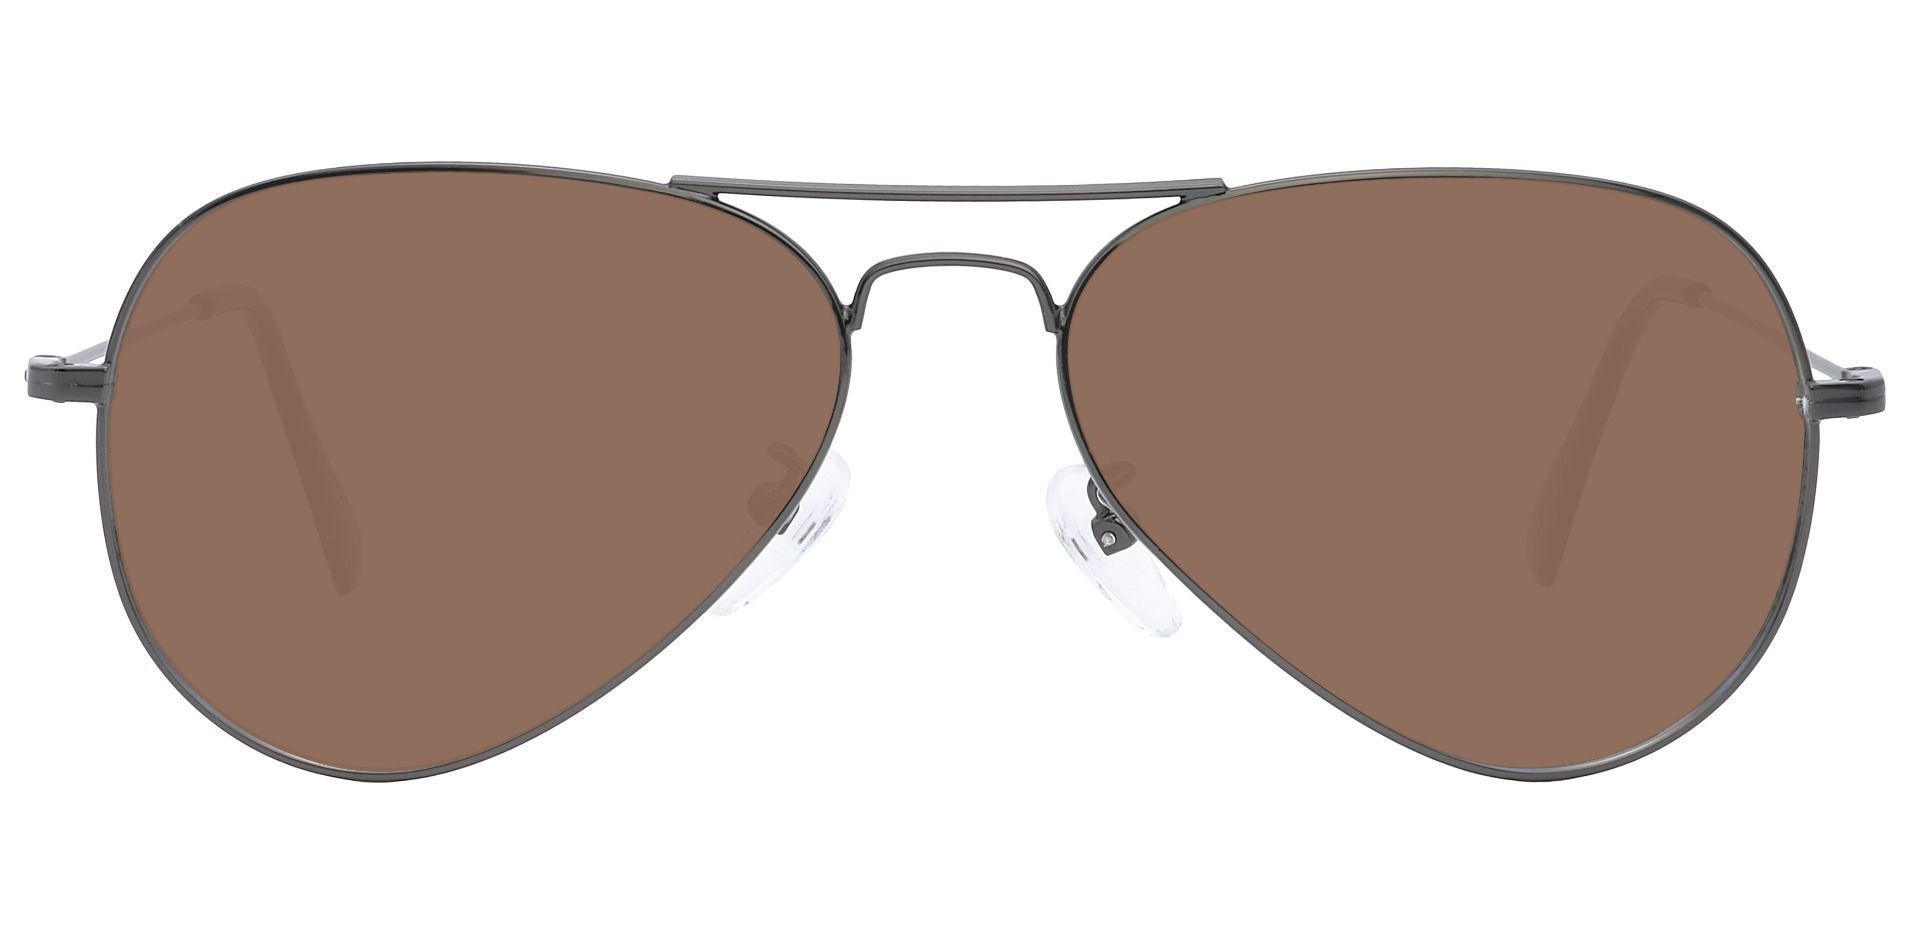 Memphis Aviator Single Vision Sunglasses - Gray Frame With Brown Lenses